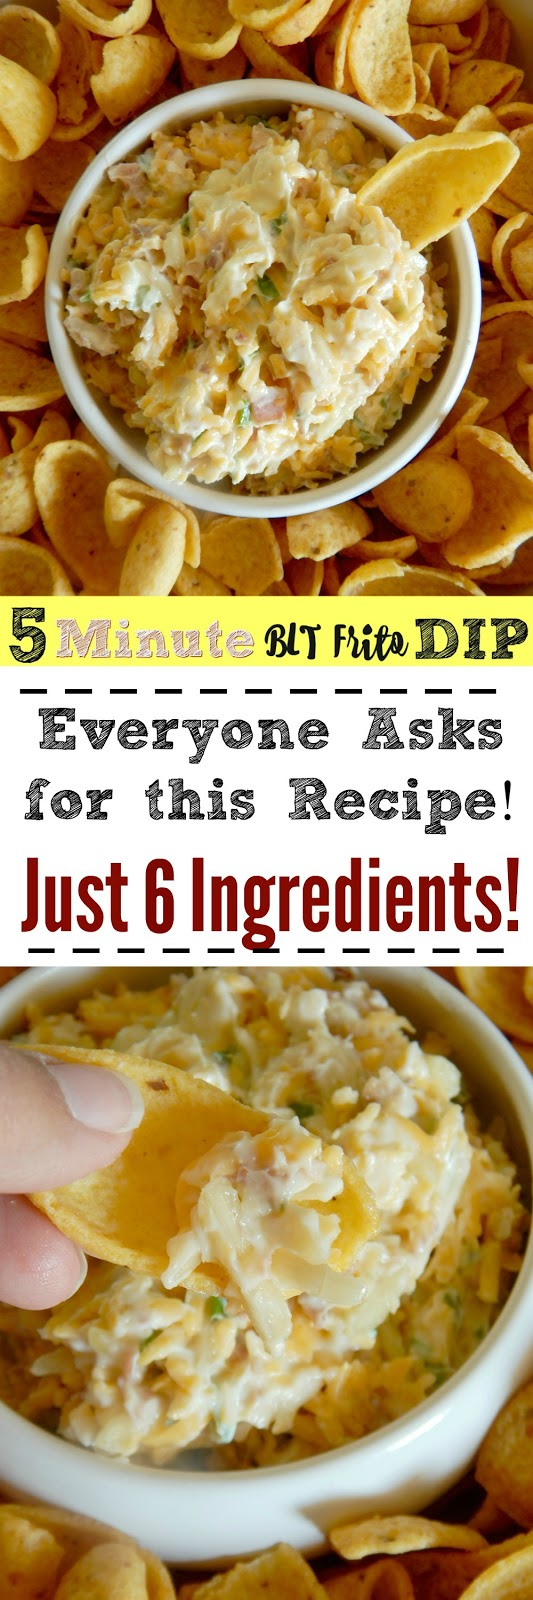 5 Minute BLT Frito Dip...the perfect summer snack!  Served great poolside, at a barbecue or for a potluck! (sweetandsavoryfood.com)